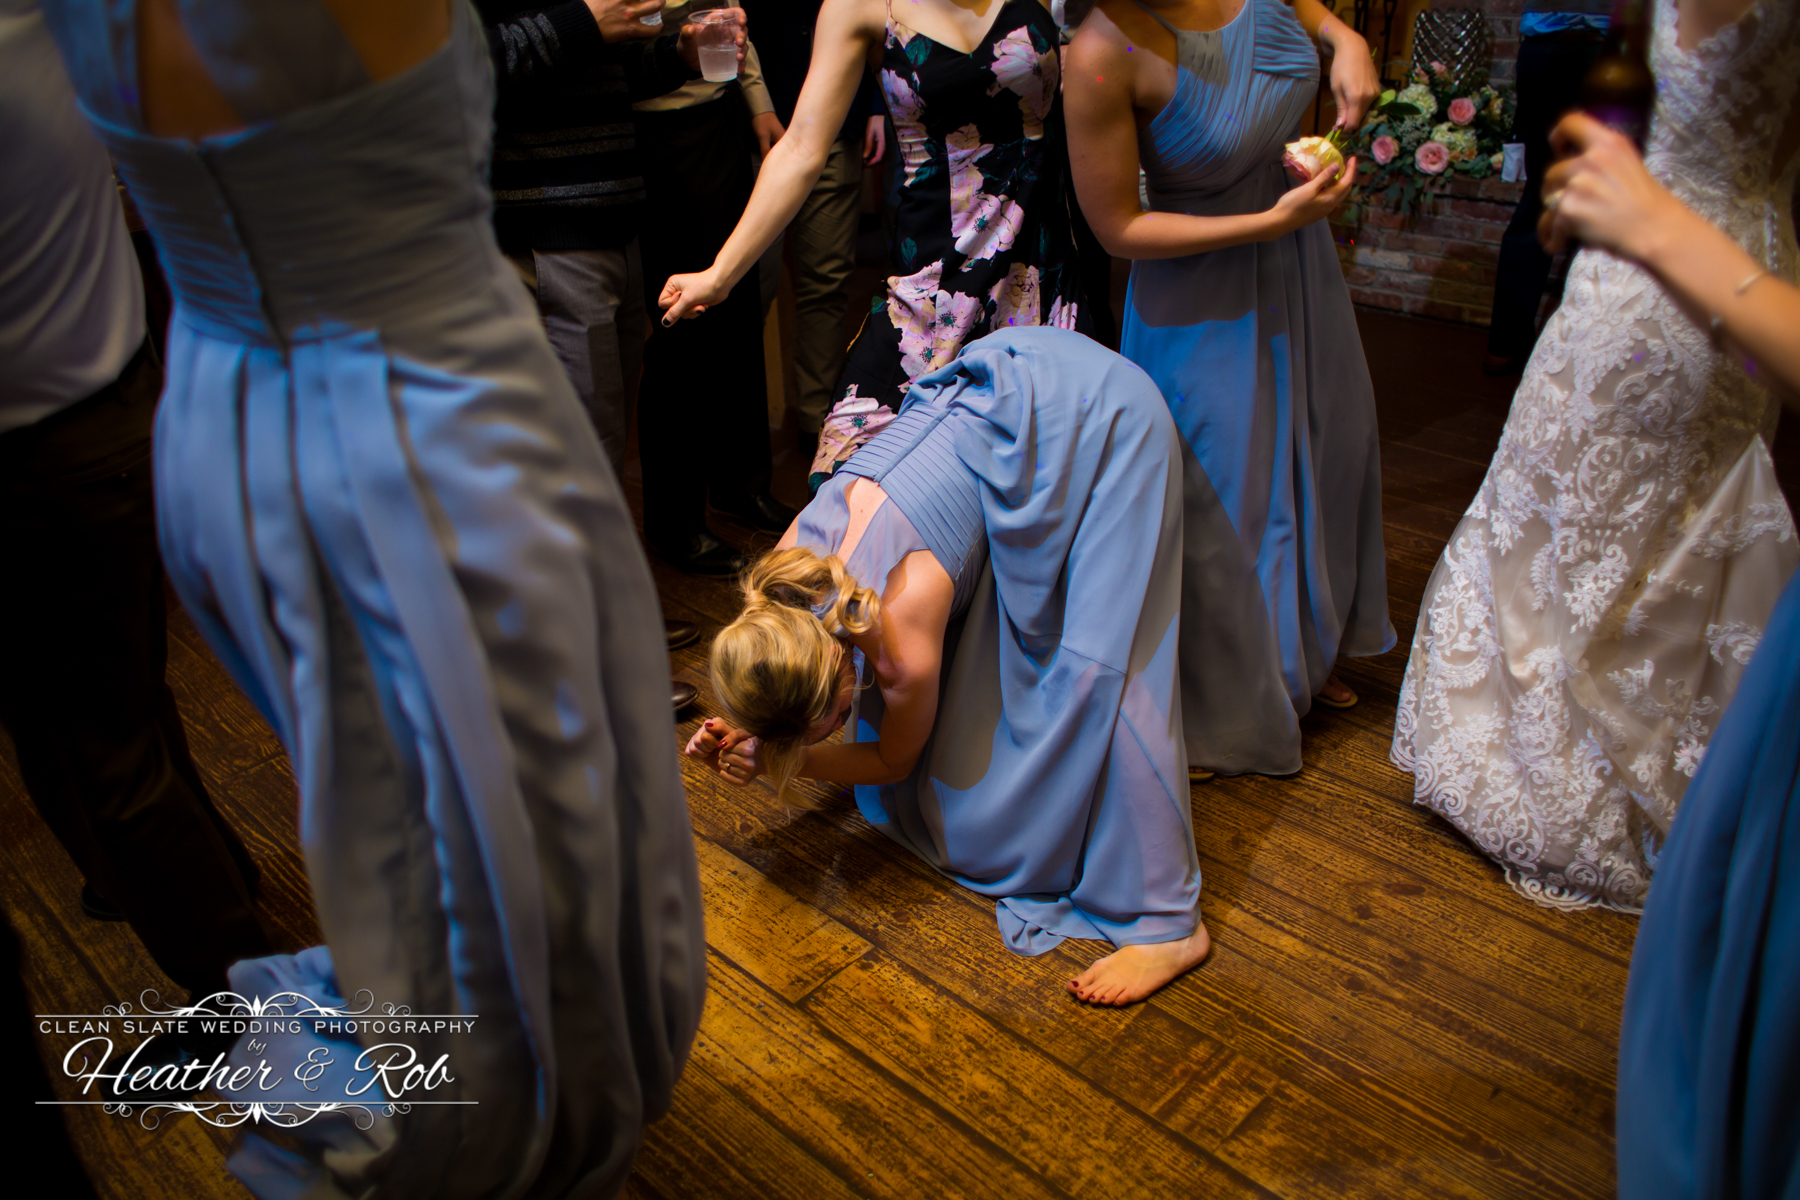 bridesmaid dancing bent over completely at wedding